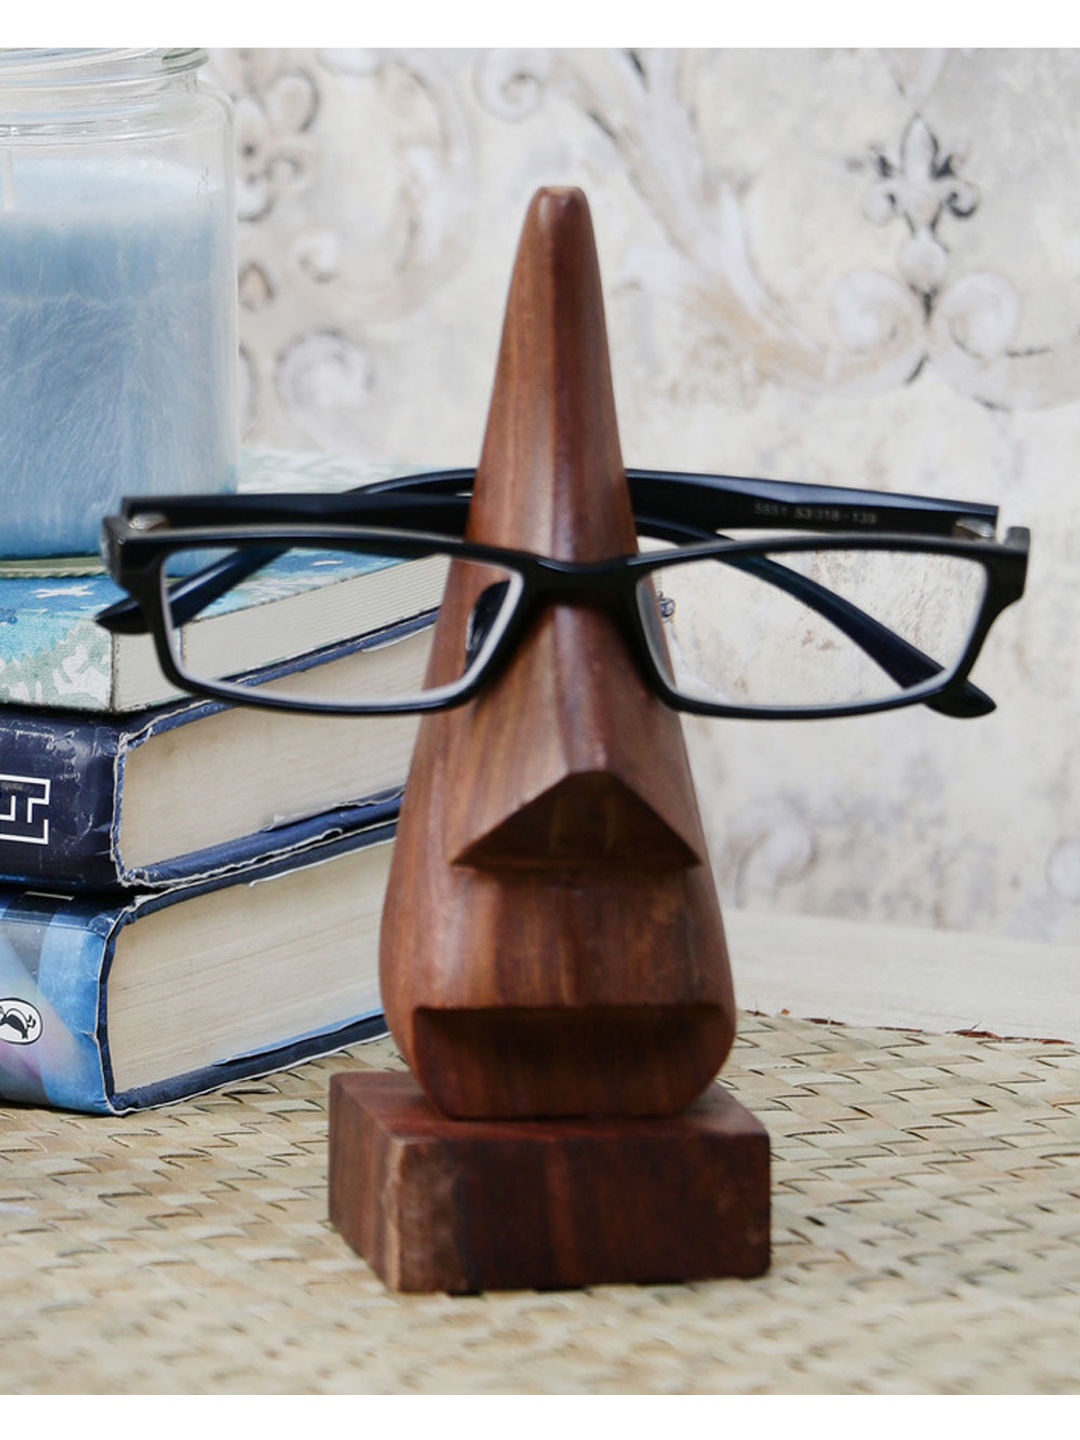 Handcrafted Wooden Spectacle Holder